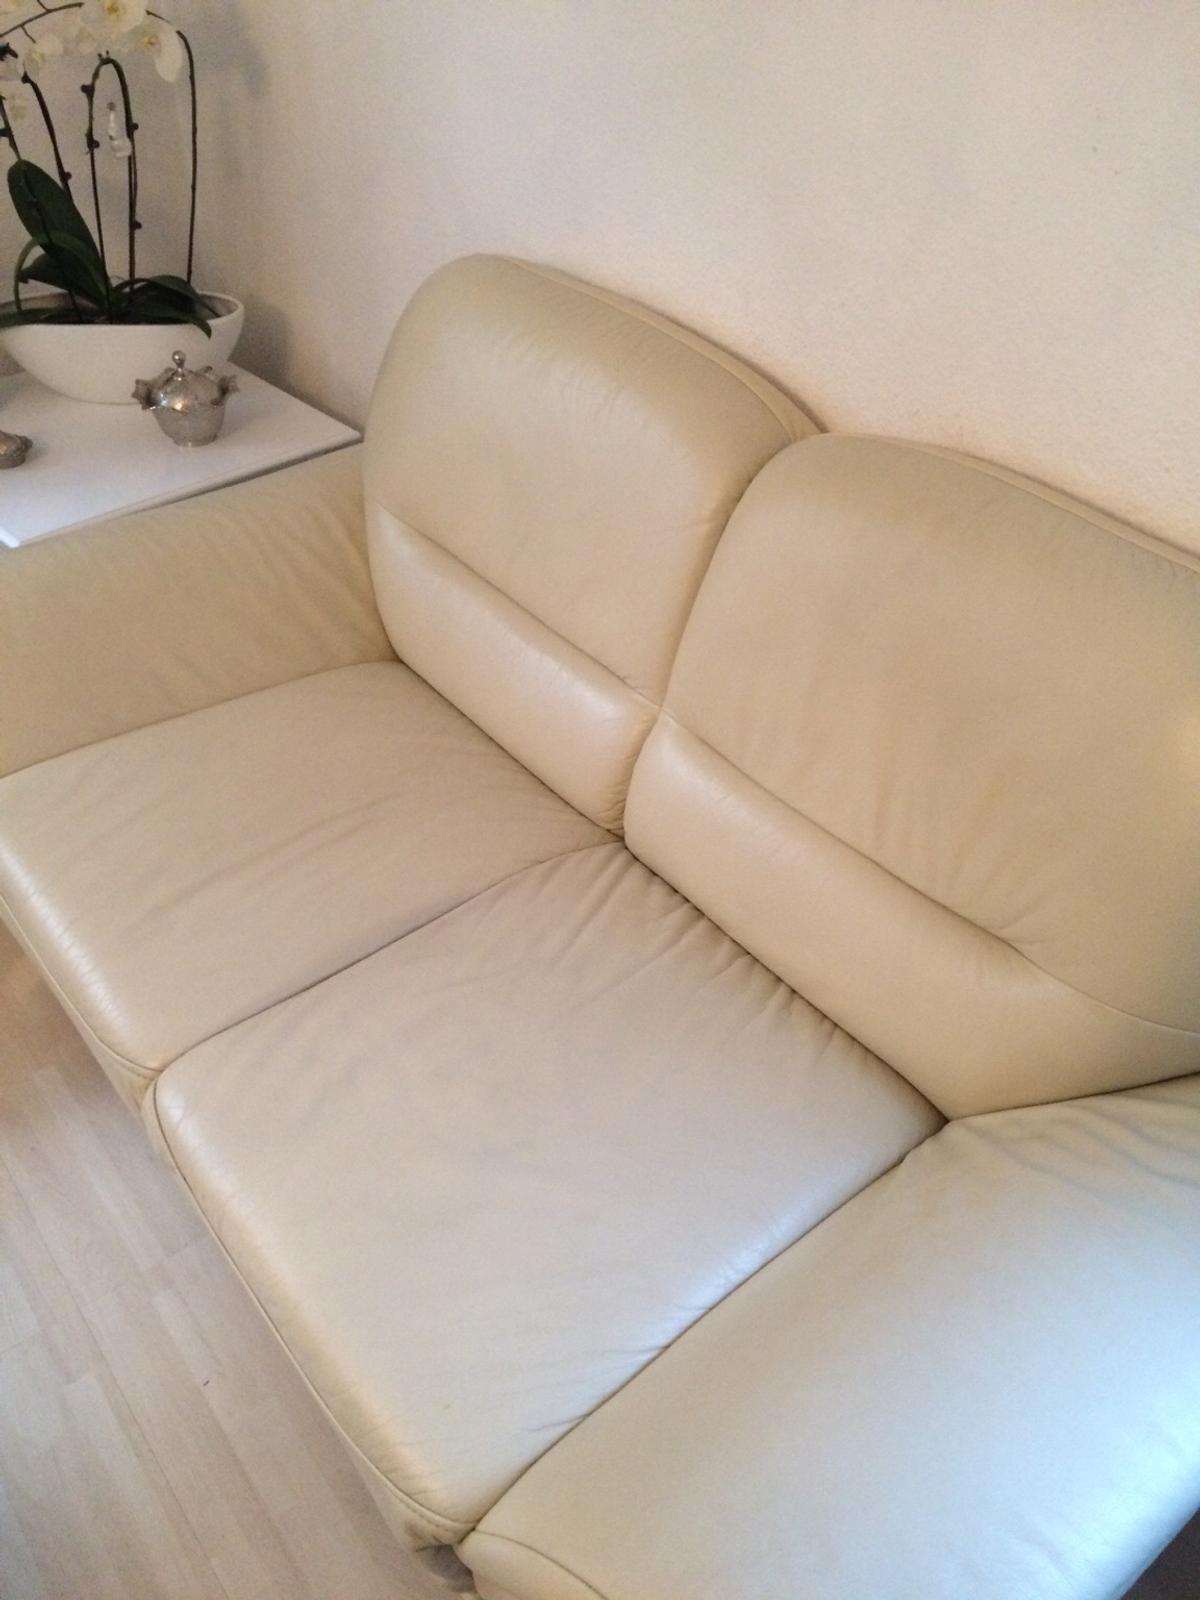 Ledercouch Beige In 63450 Hanau For 50 00 For Sale Shpock